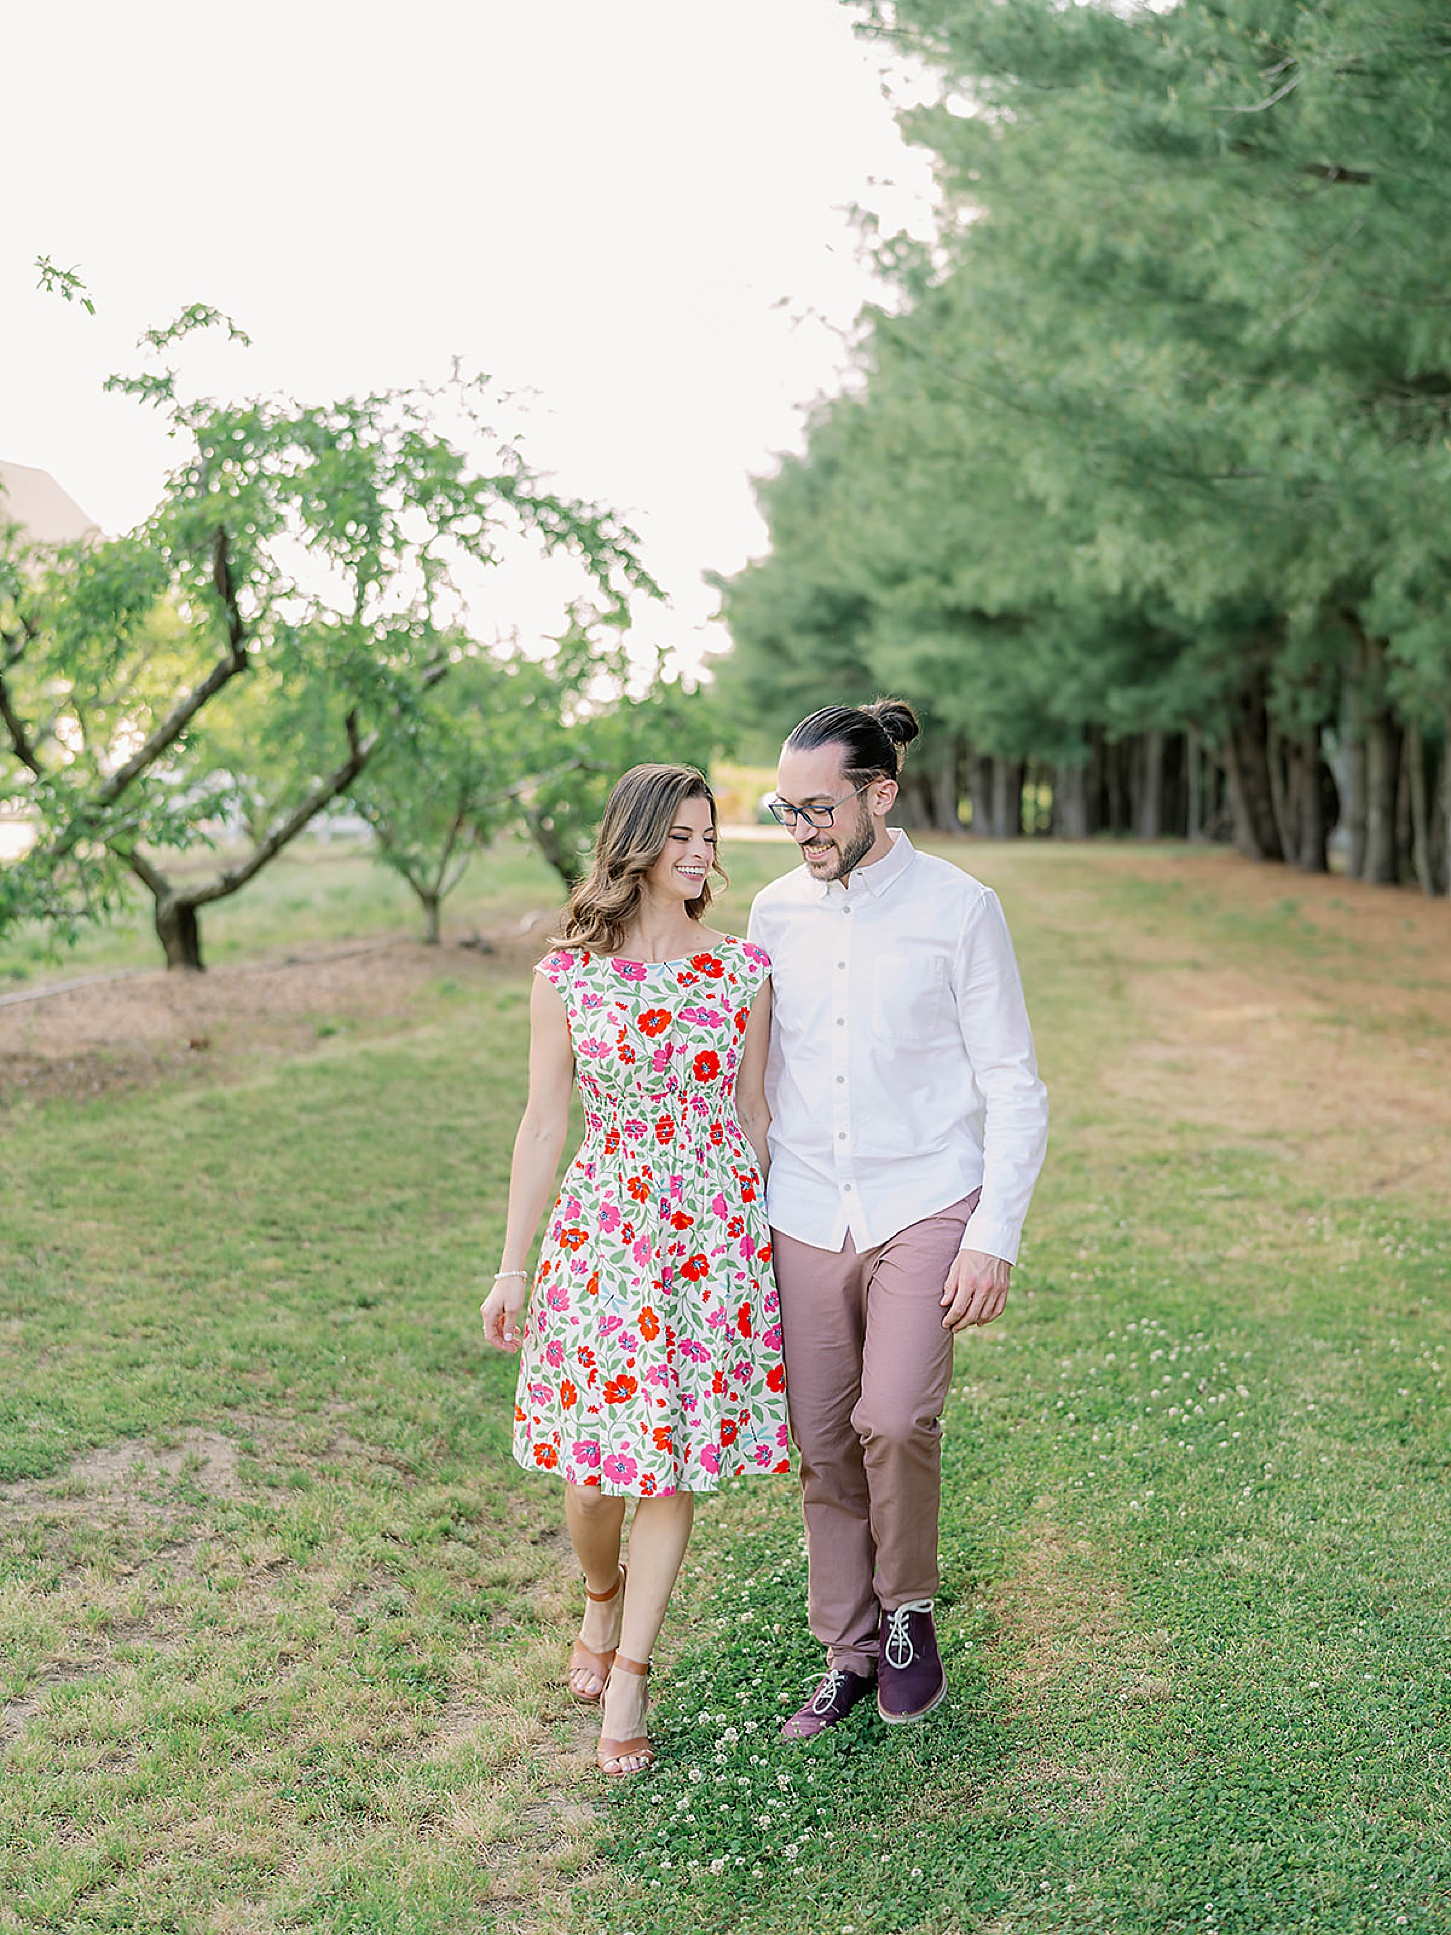 Bast Brothers Garden Center Mullica Hill NJ Engagement Photography by Magdalena Studios 0001